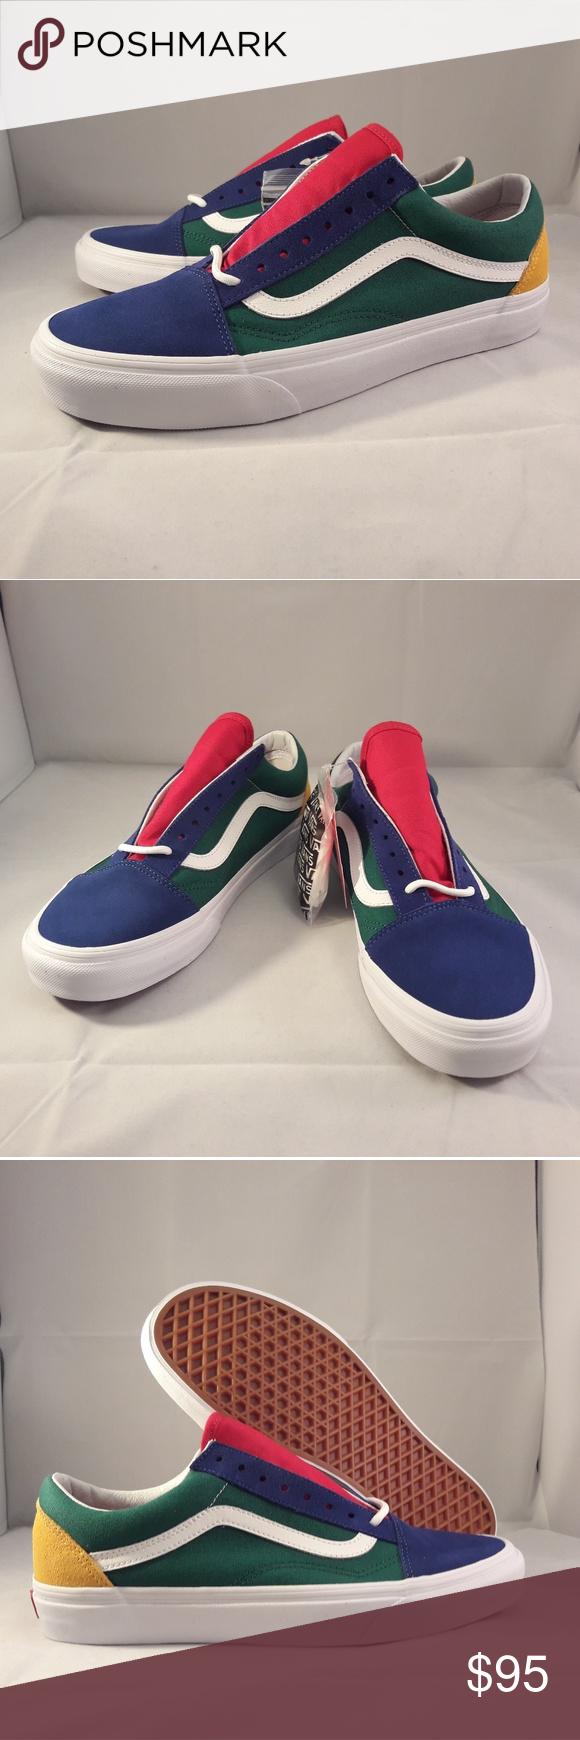 Vans Old Skool Yacht Club Skate Shoes. Vans Old Skool Yacht Club Skate  Shoes. VN0A38G1R1Q Color  Blue Green Yellow Red Color Block Condition   Brand new with ... 231a38eac